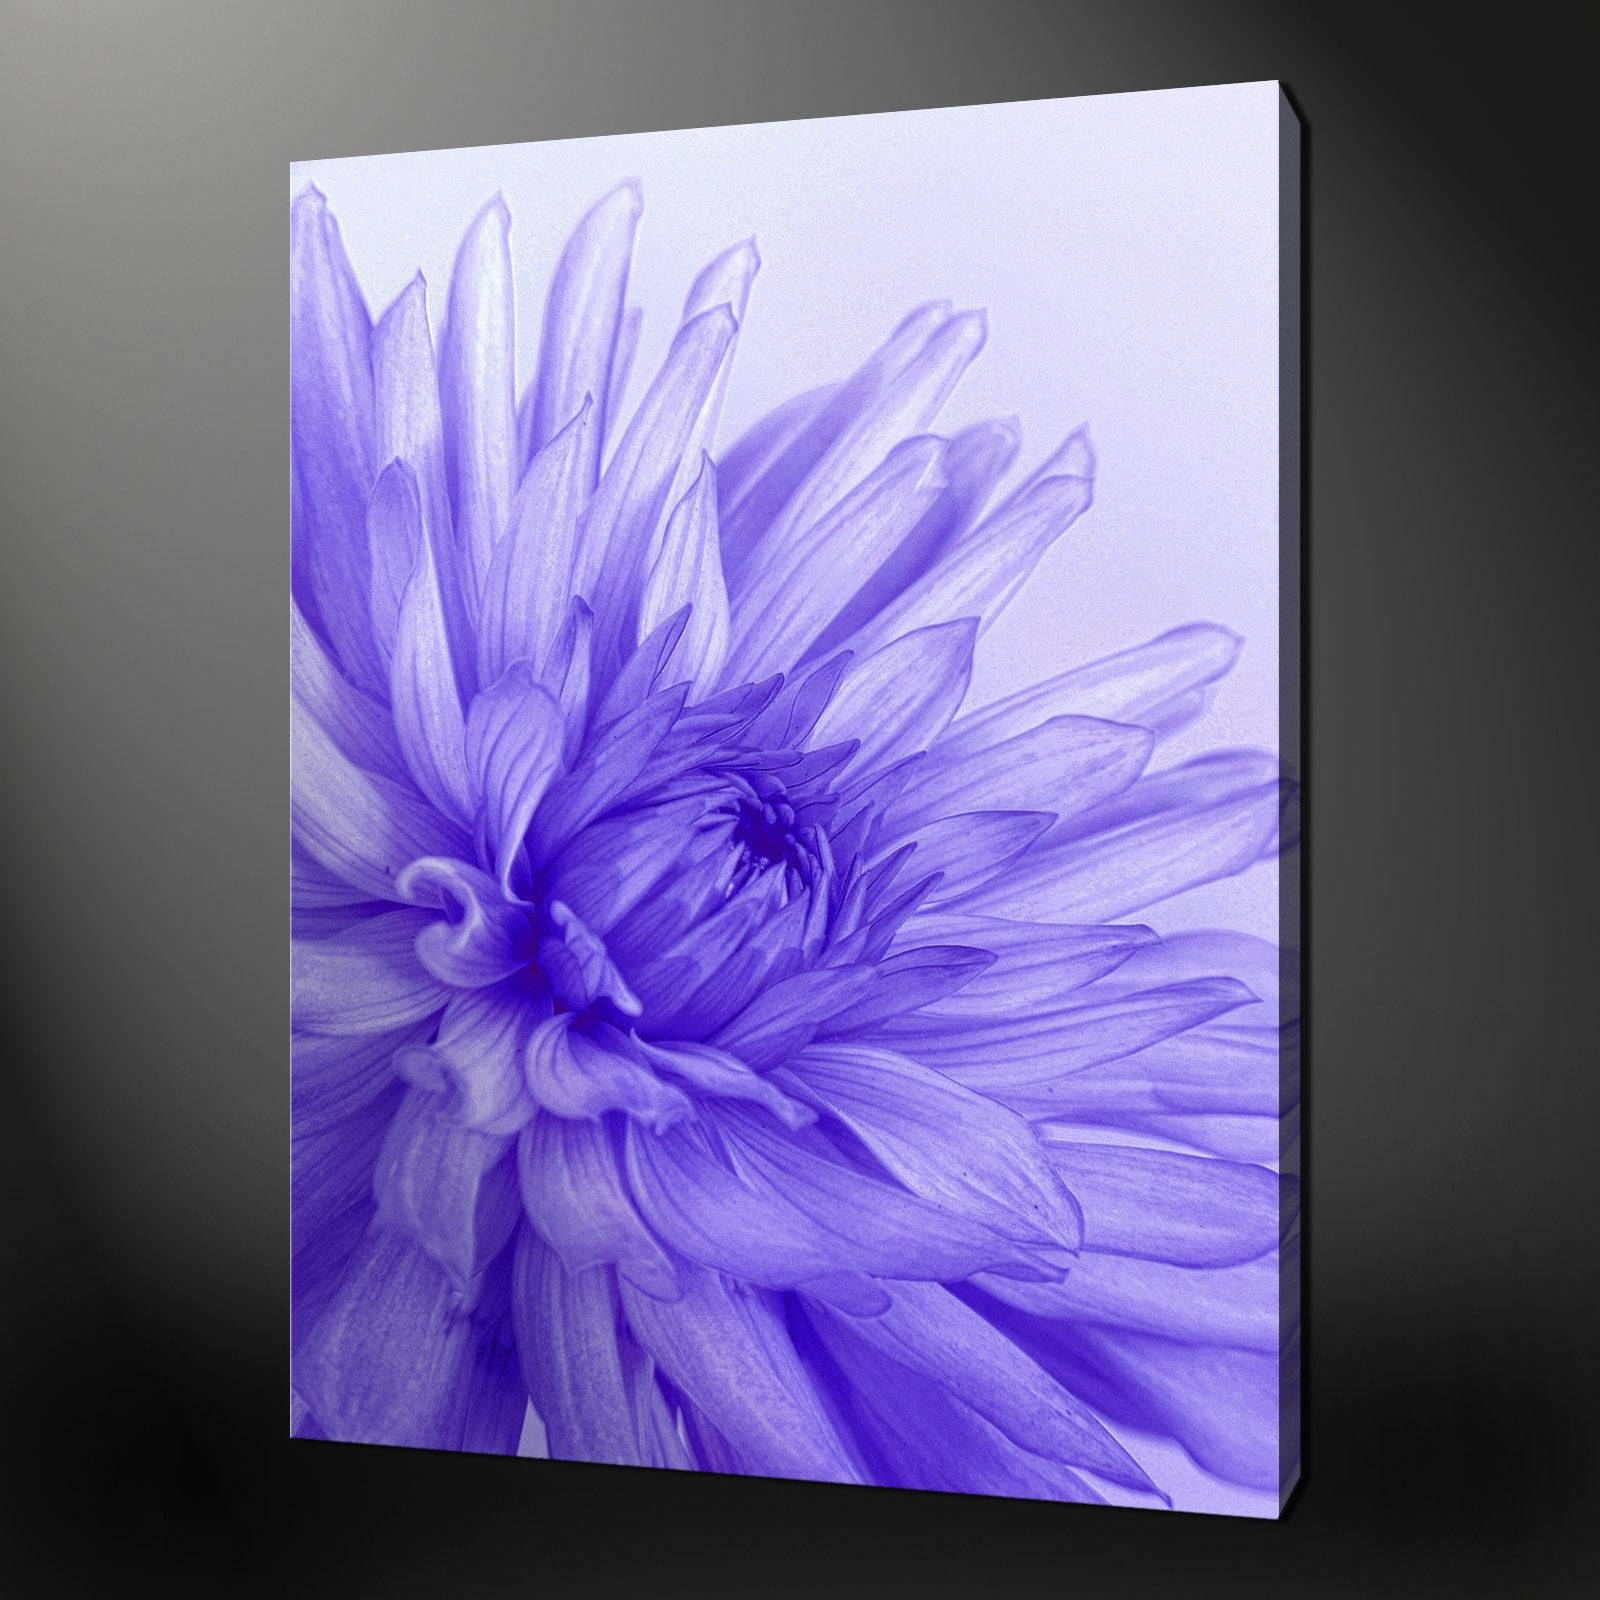 Purple Flower Wall Art Ideal As Metal Wall Art On Wall Art Canvas Pertaining To Current Purple Flower Metal Wall Art (View 19 of 25)